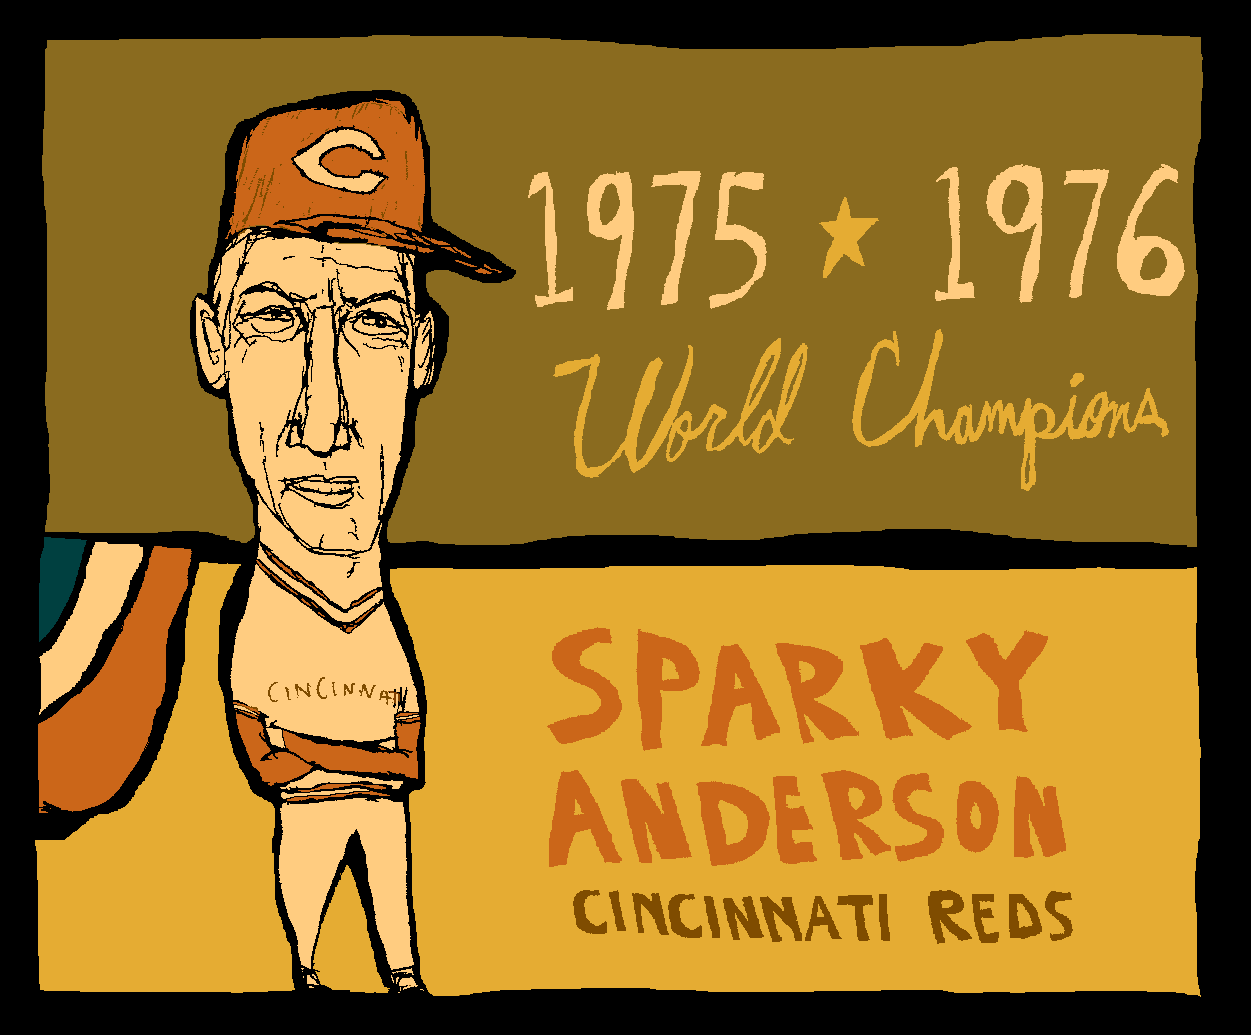 Sparky Anderson Cincinnati Reds Sparky Anderson of the Big Red Machine Cincinnati Reds… For more detail go to http://baseball-art.blogspot.com/2012/04/heres-sparky-anderson.html